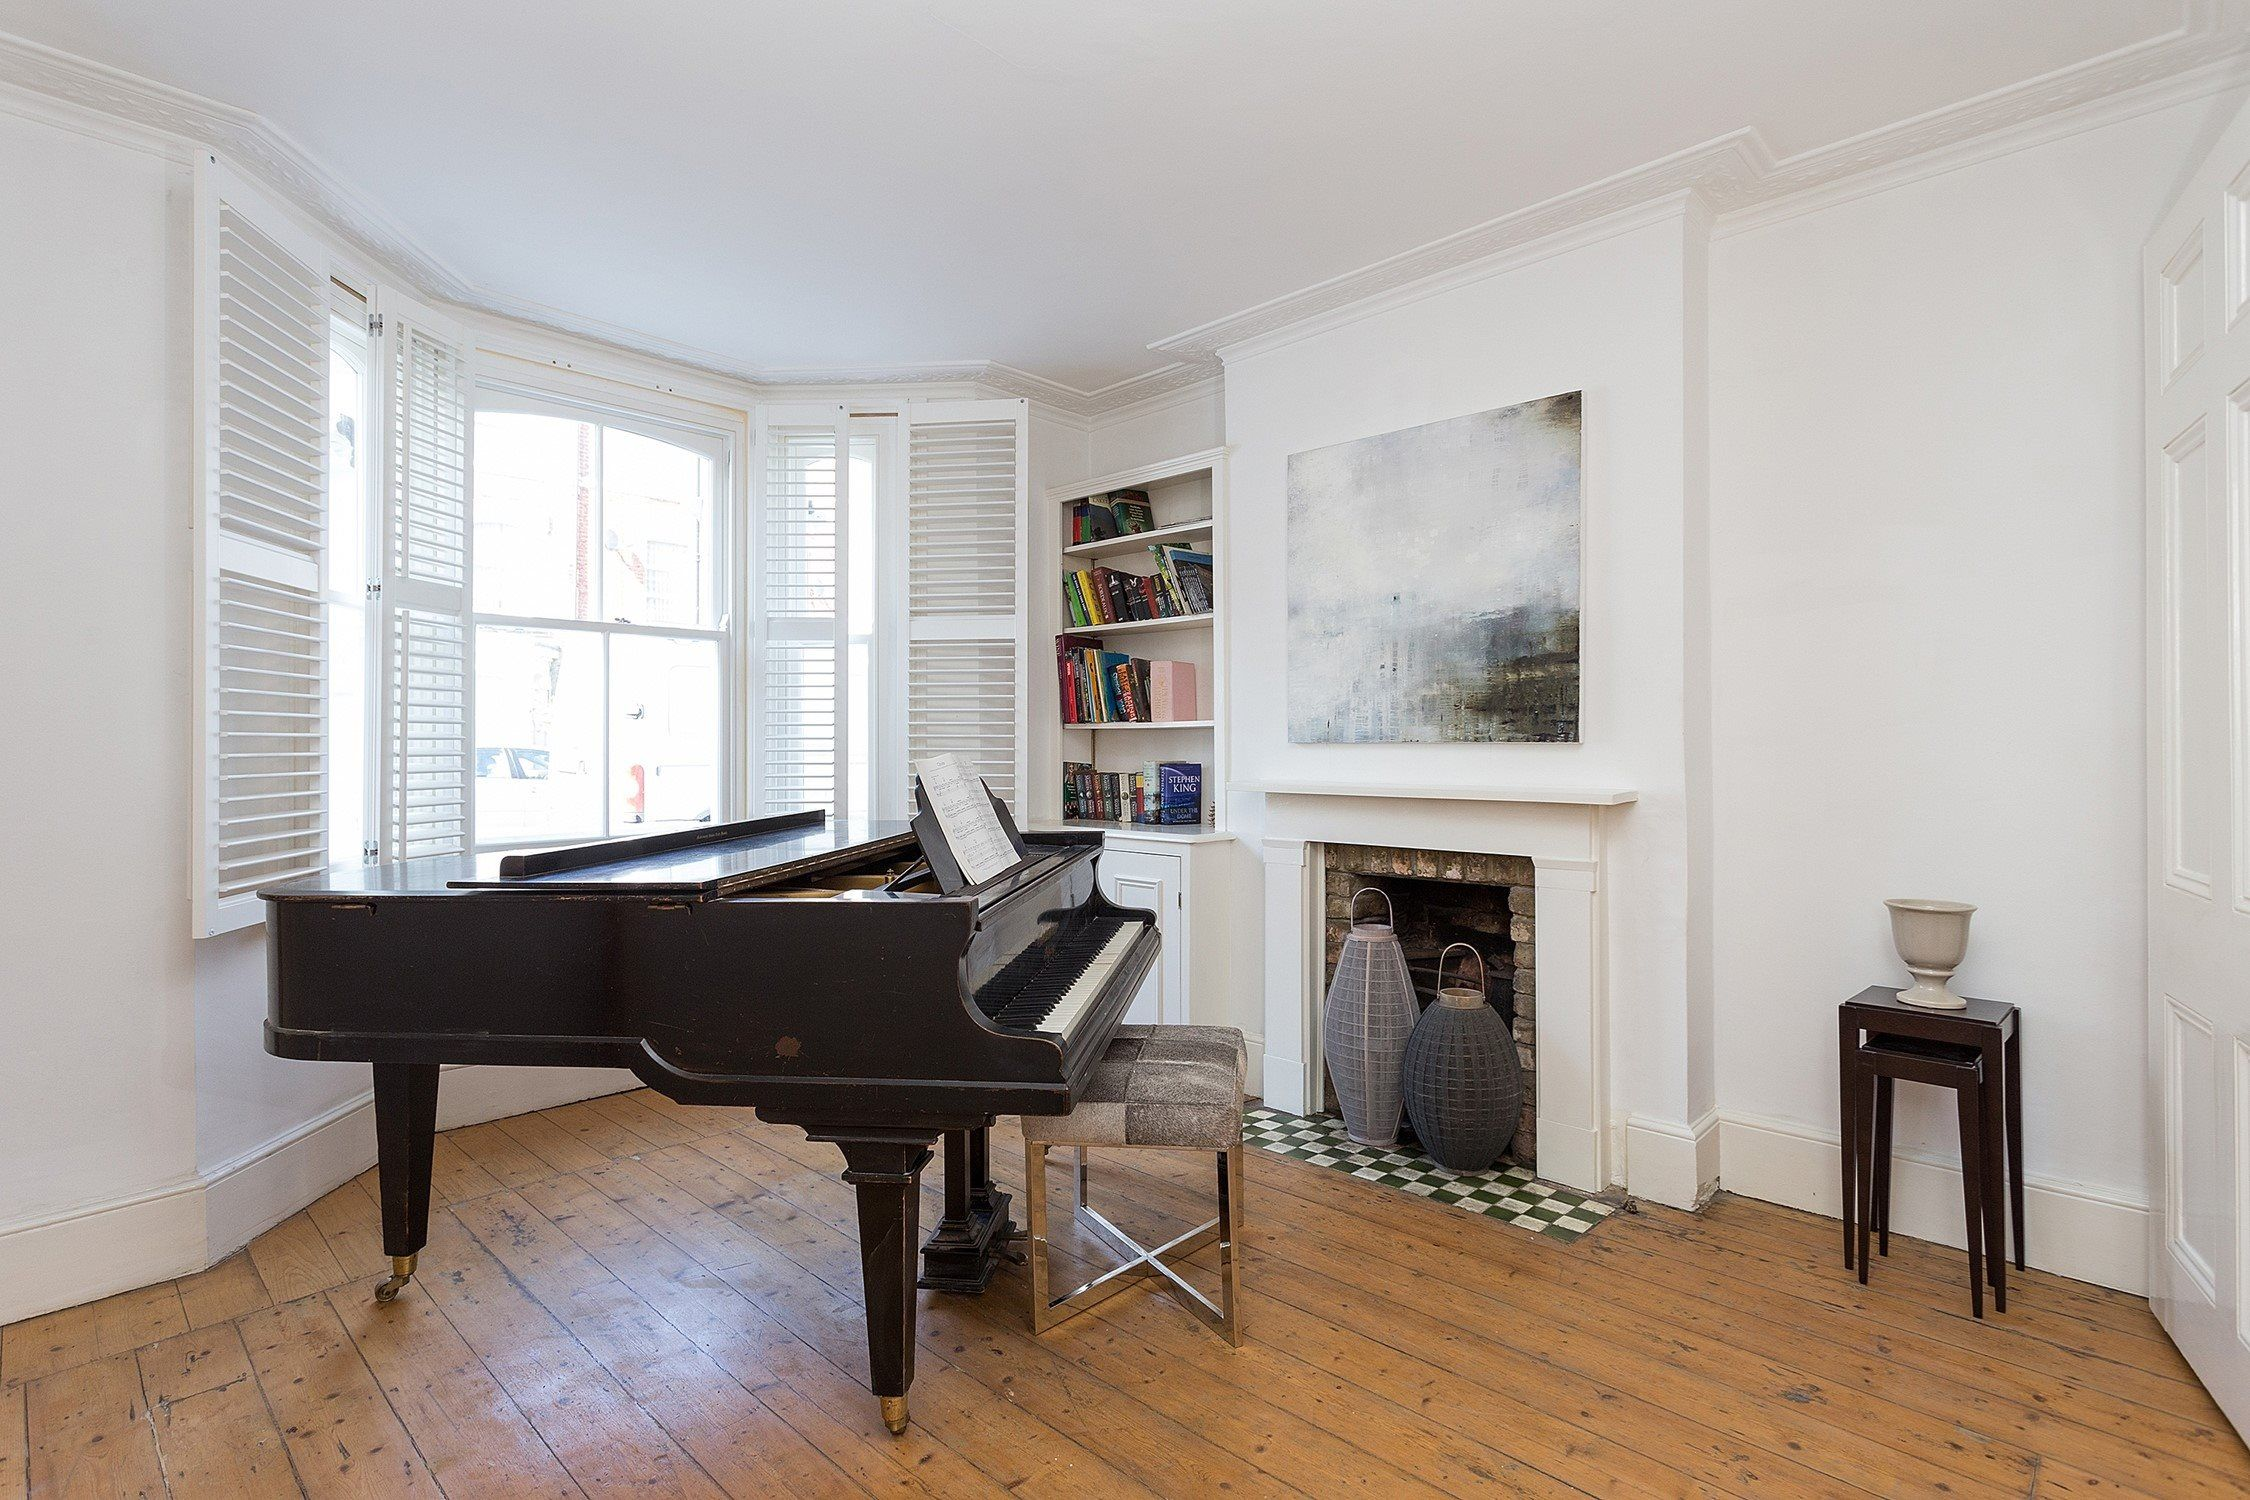 For #sale! 4 #bedroom #flat for sale in #Clapham North: Ferndale Road, SW4 - £1,250,000 #interiordesign